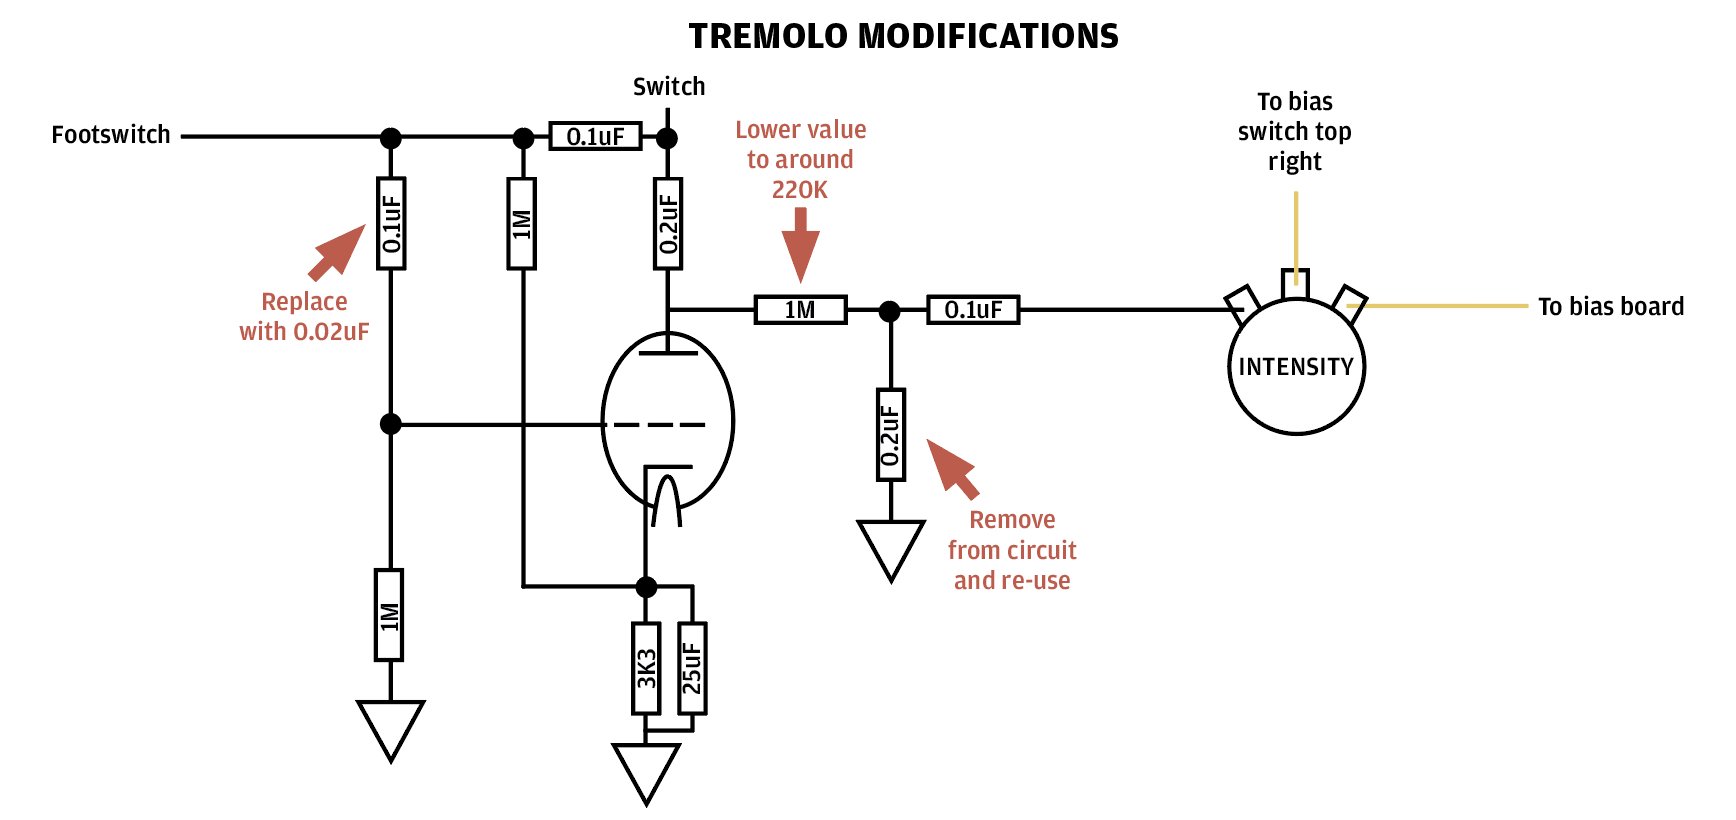 fender tremolo diagram